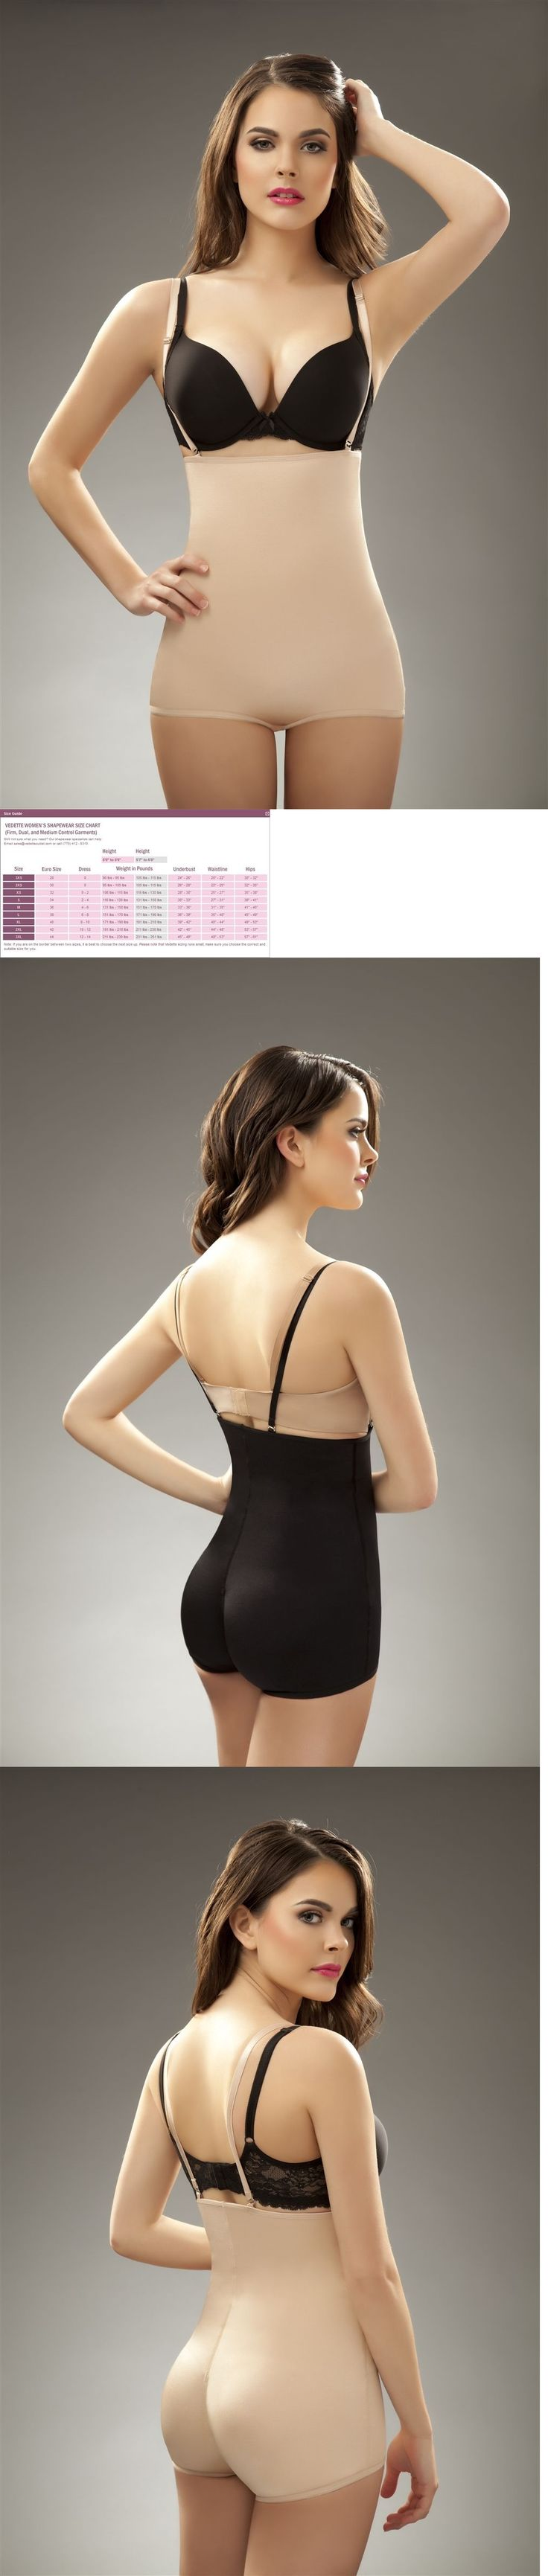 Corsets and Girdles 182051: Vedette 123 Lilian Strapless Body Shaper Latex - Waist Cinchers Girdle -> BUY IT NOW ONLY: $41.99 on eBay!